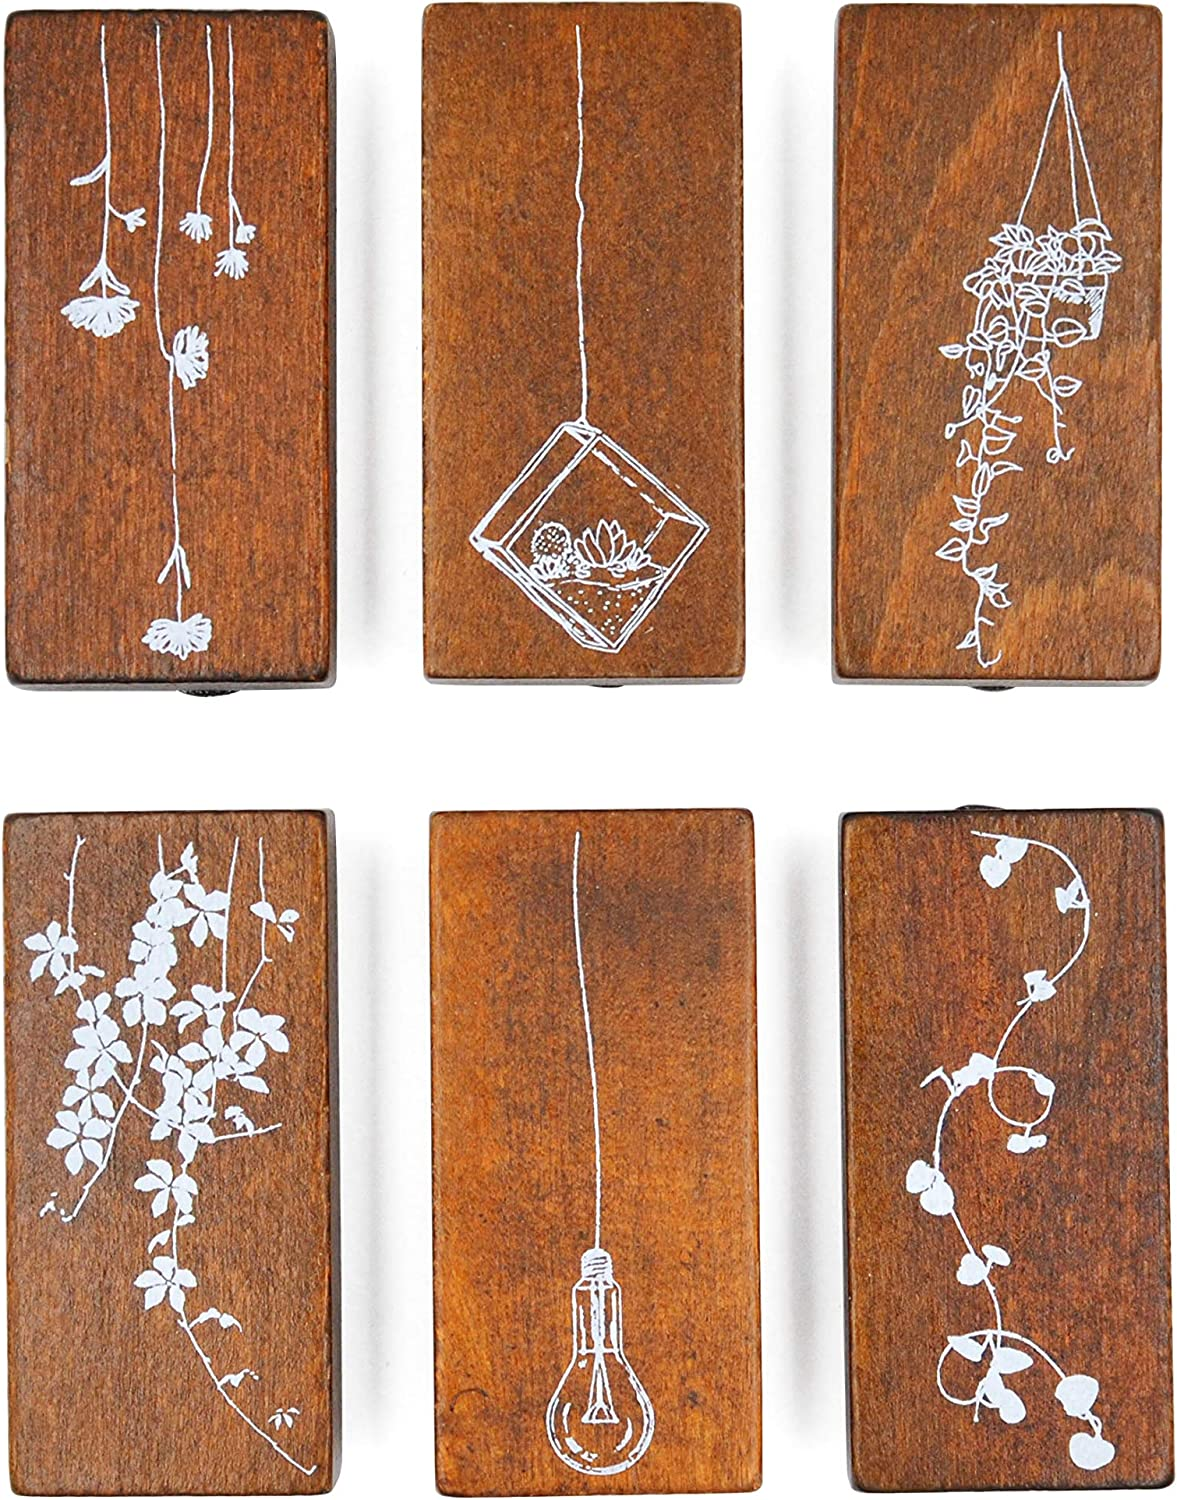 Cliocoo 6 pcs Sky Garden Flower Plant Wood Rubber Stamp Set M-59 (Sky Garden-2)